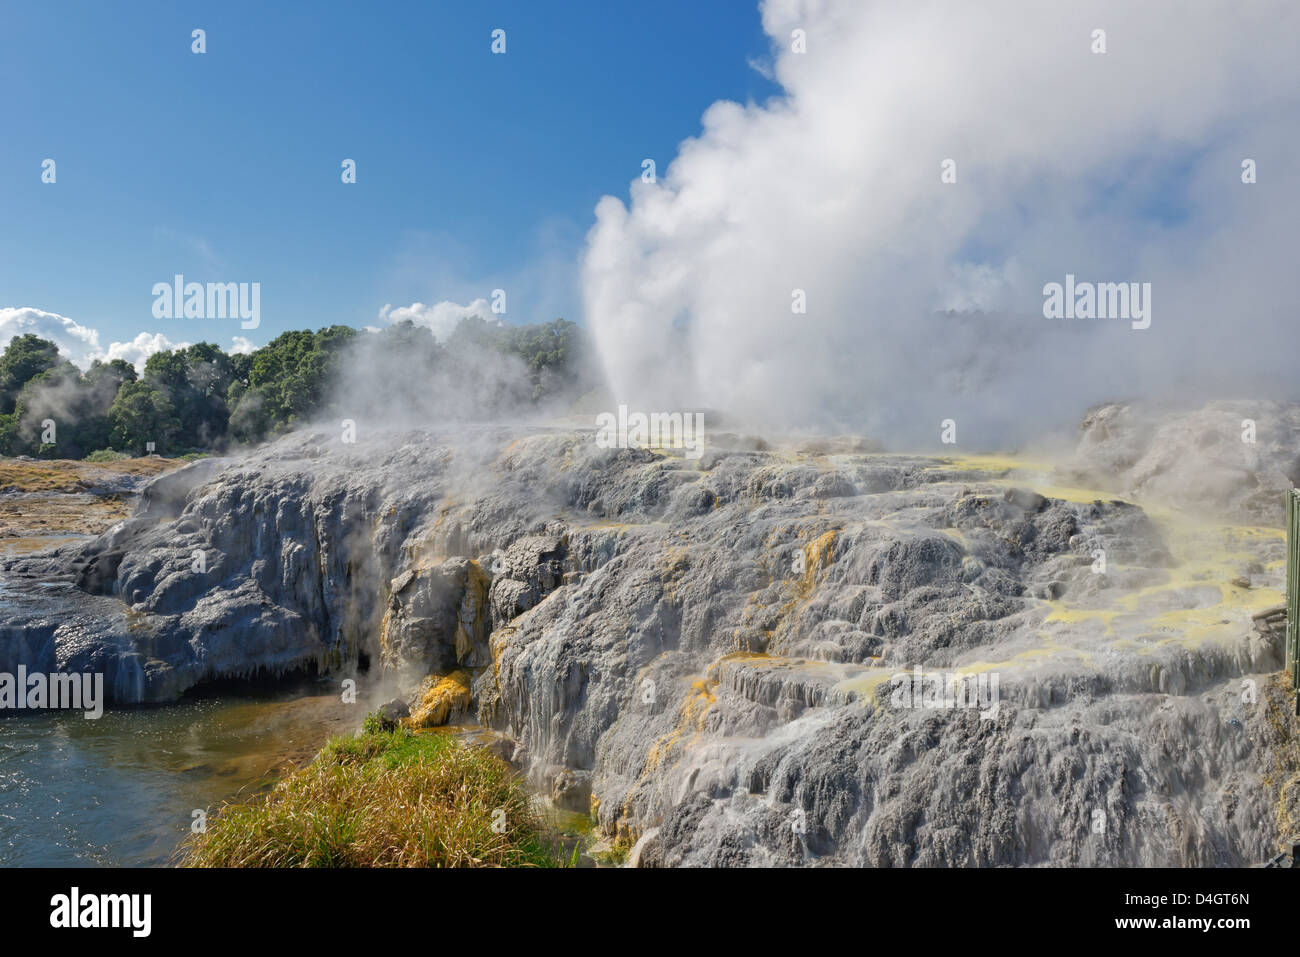 Pohutu Geyser and Prince of Wales Geyser, Rotorua, North Island, New Zealand - Stock Image